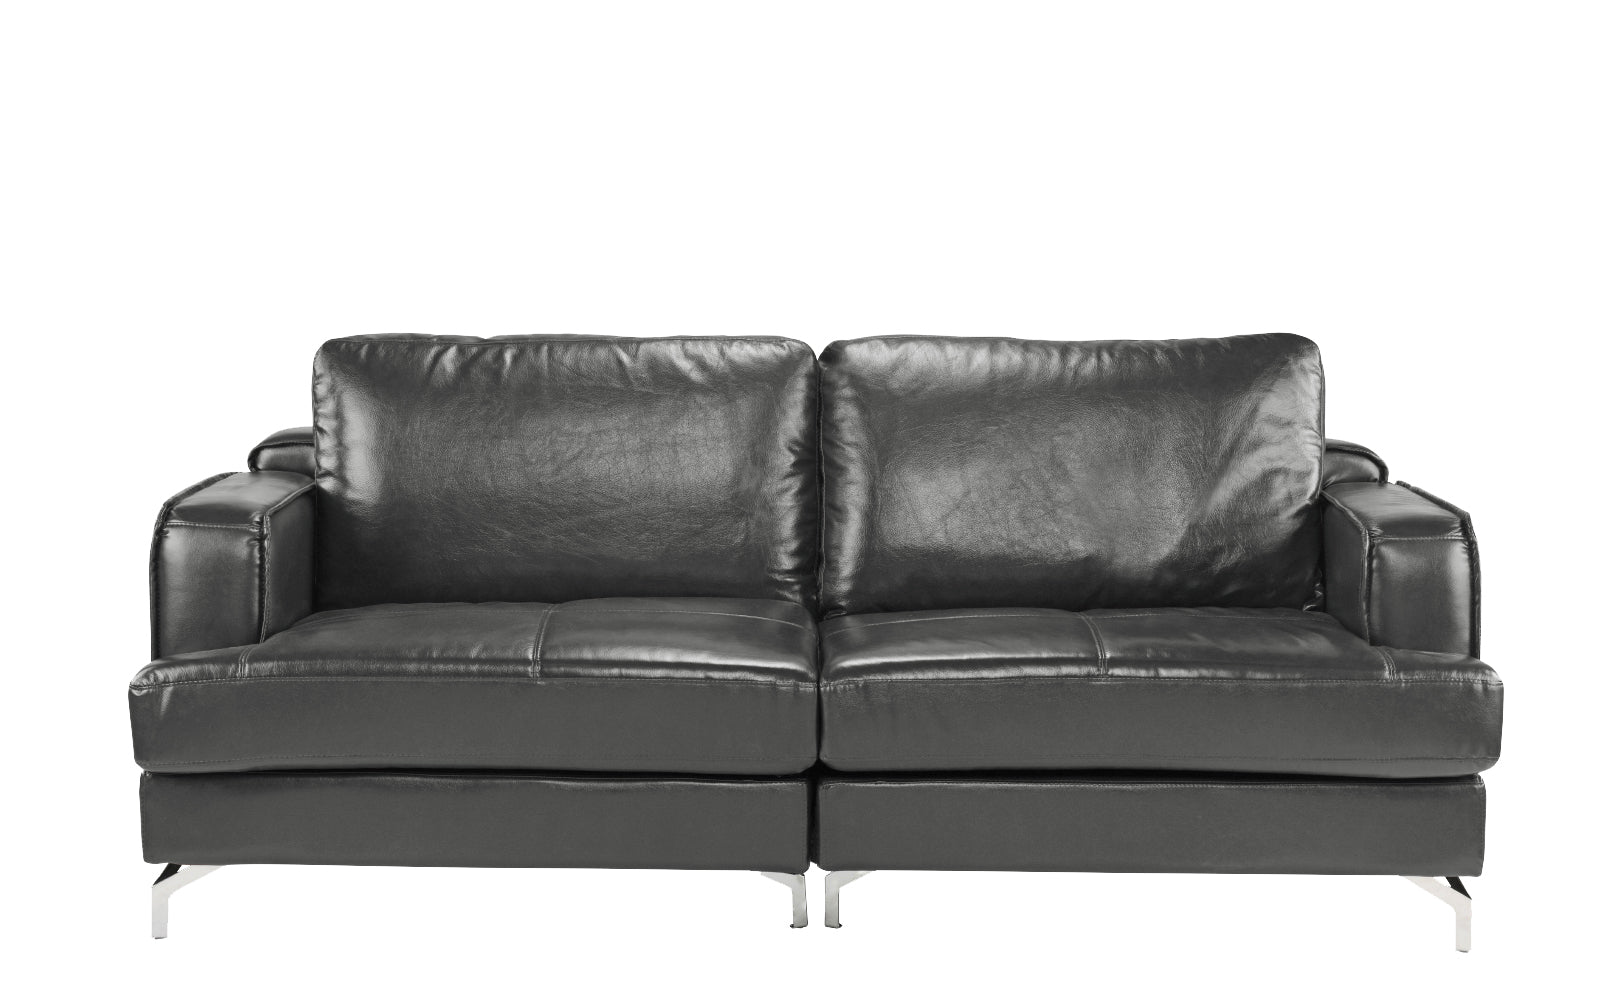 Leather Sofa Image